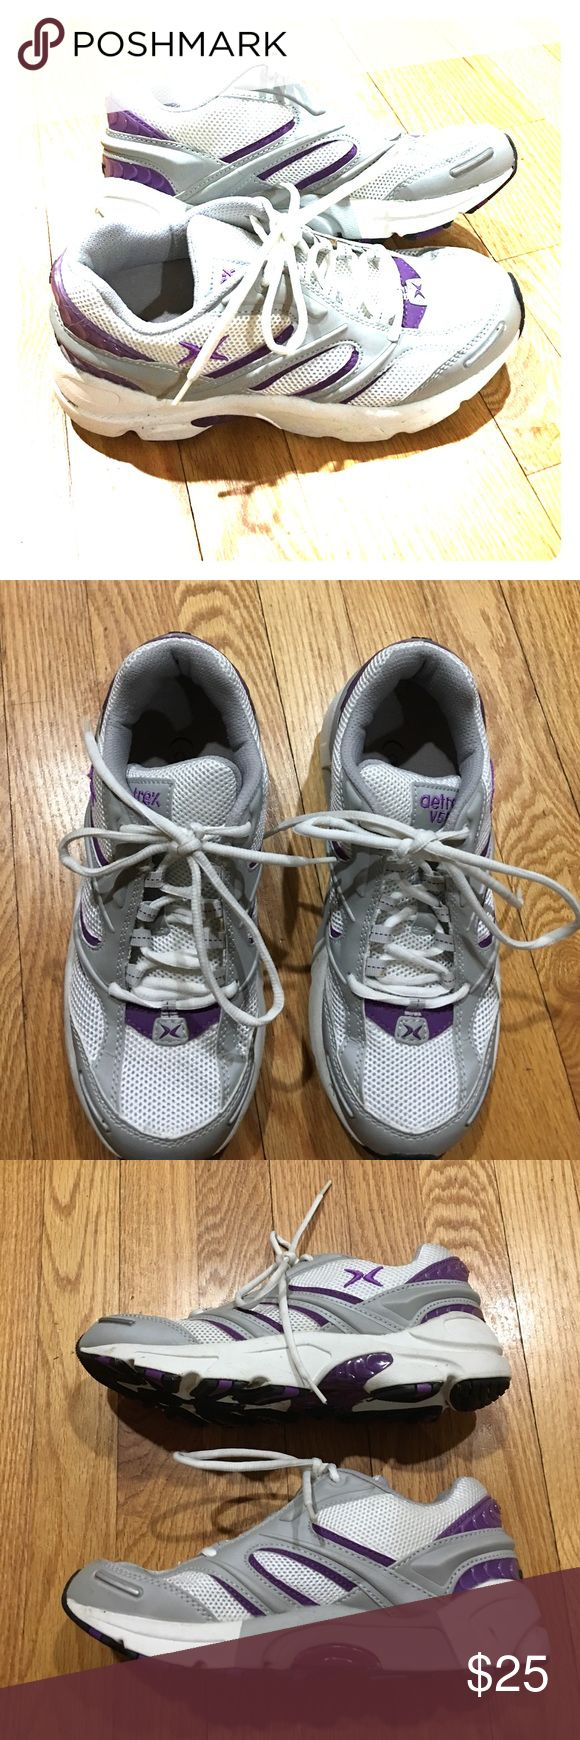 Aetrex sz 6 wide v559 purple white gray great Aetrex v559 sz 6 wide running shoes excellent condition very comfortable non-smoking home Festa livery an excellent price get them today aetrex Shoes Athletic Shoes